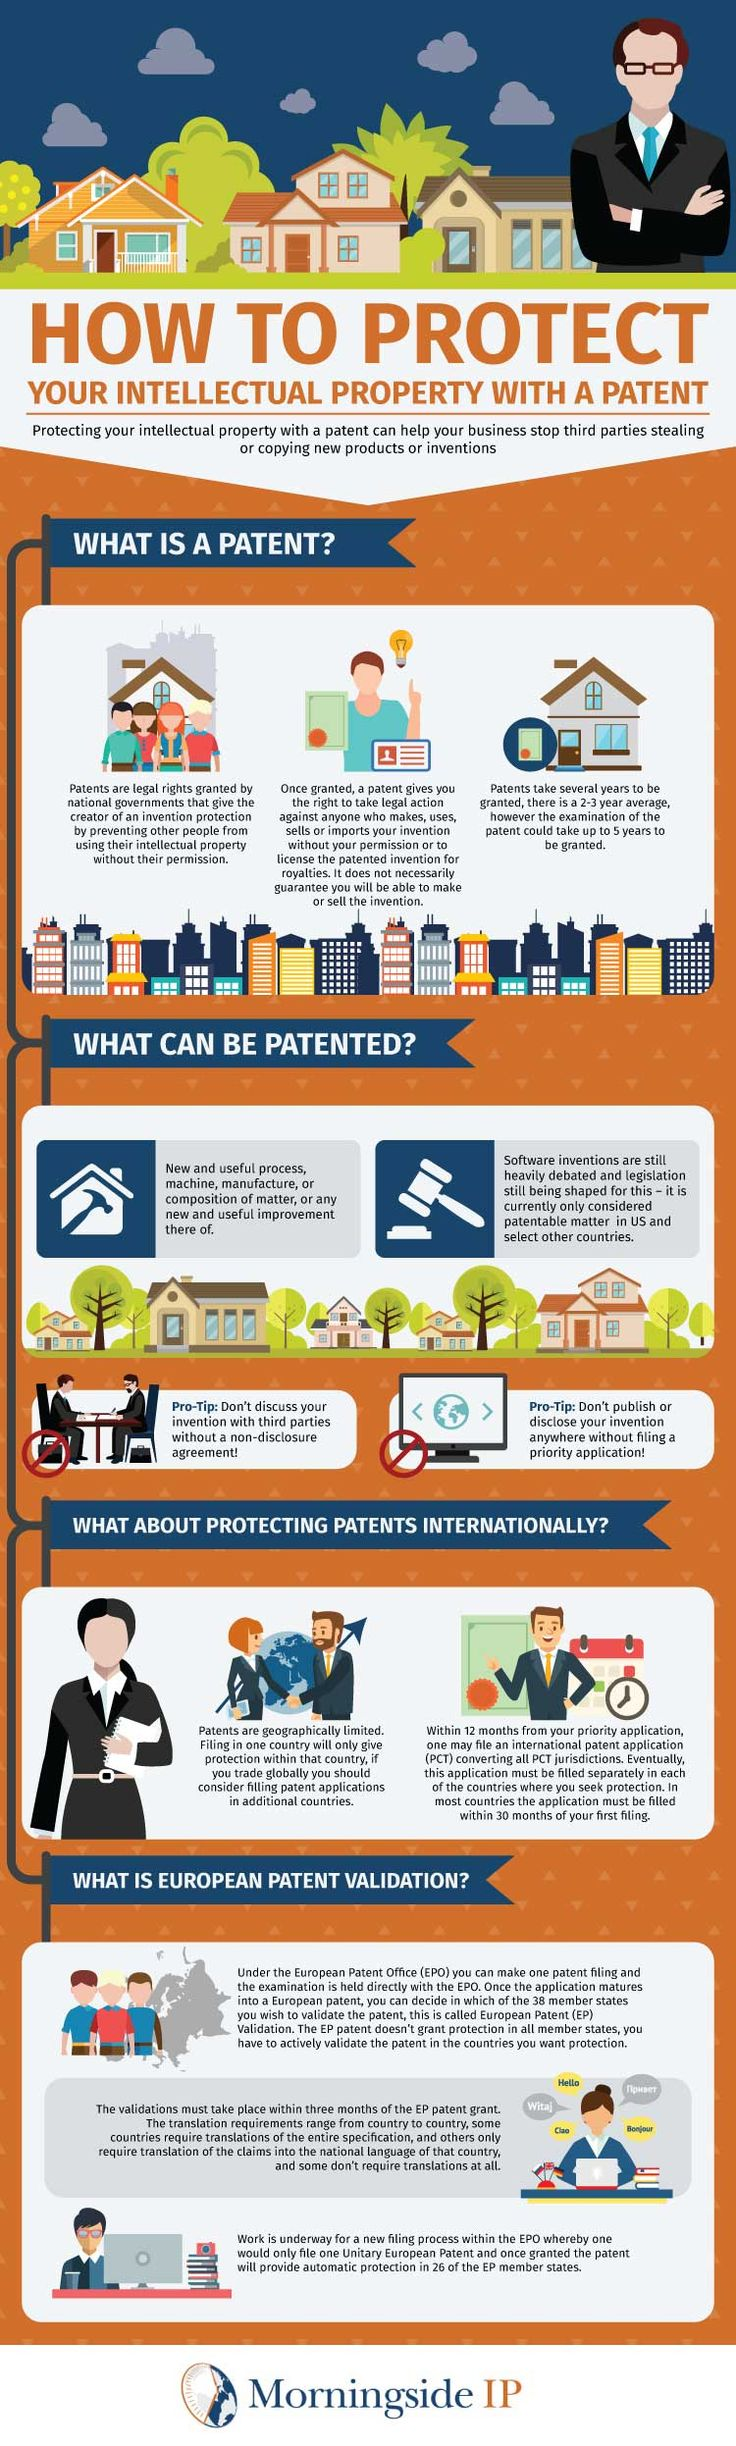 11 best patent database images on pinterest infographic infographic guide for protecting your intellectual property with a patent fandeluxe Choice Image